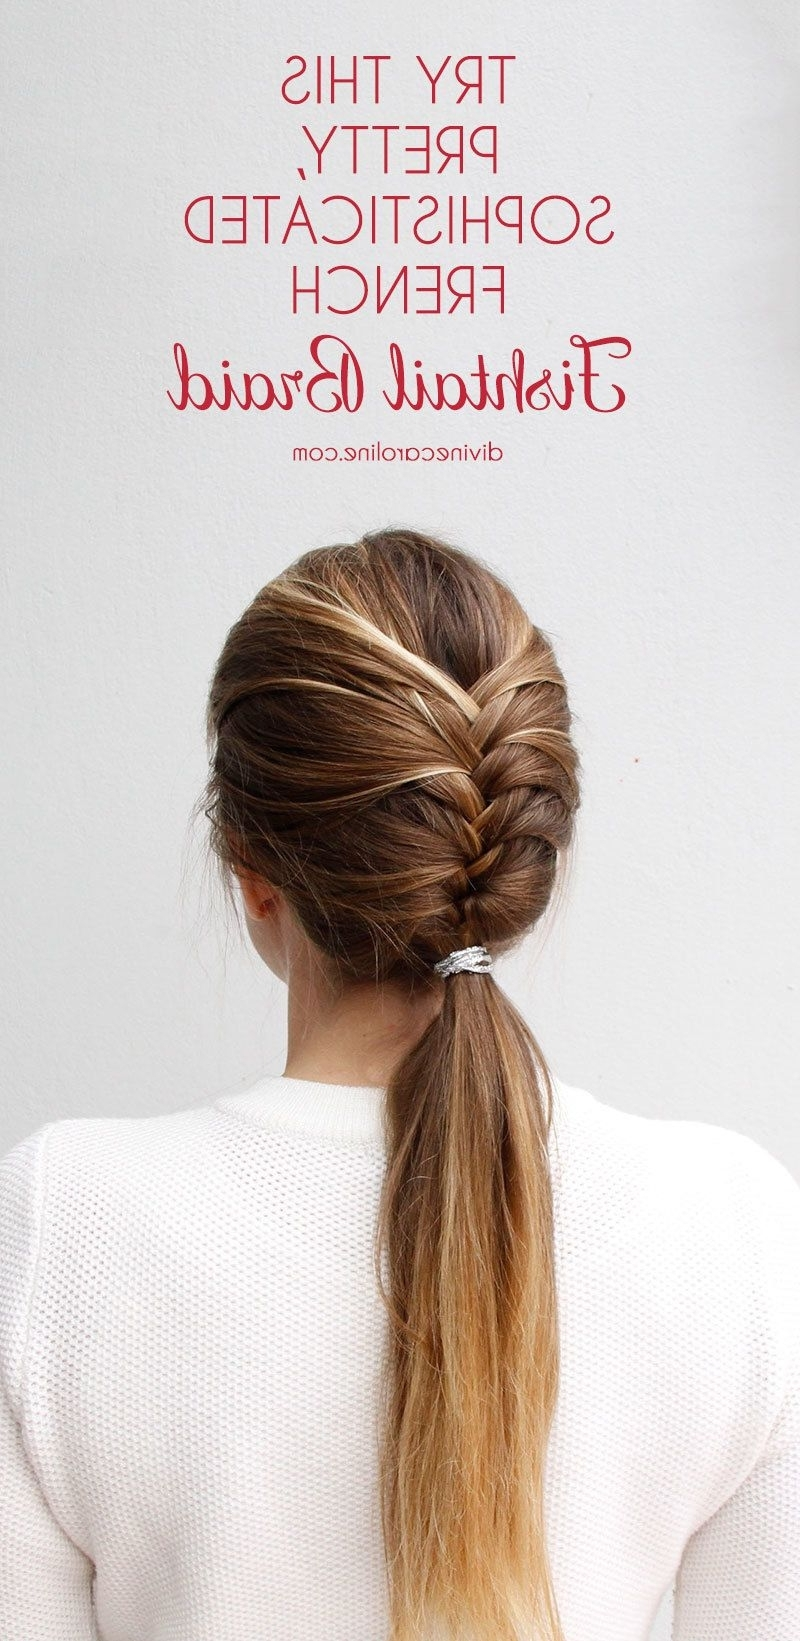 Widely Used Chunky Ponytail Fishtail Braid Hairstyles Inside Try This Pretty, Sophisticated French Fishtail Braid (View 19 of 20)